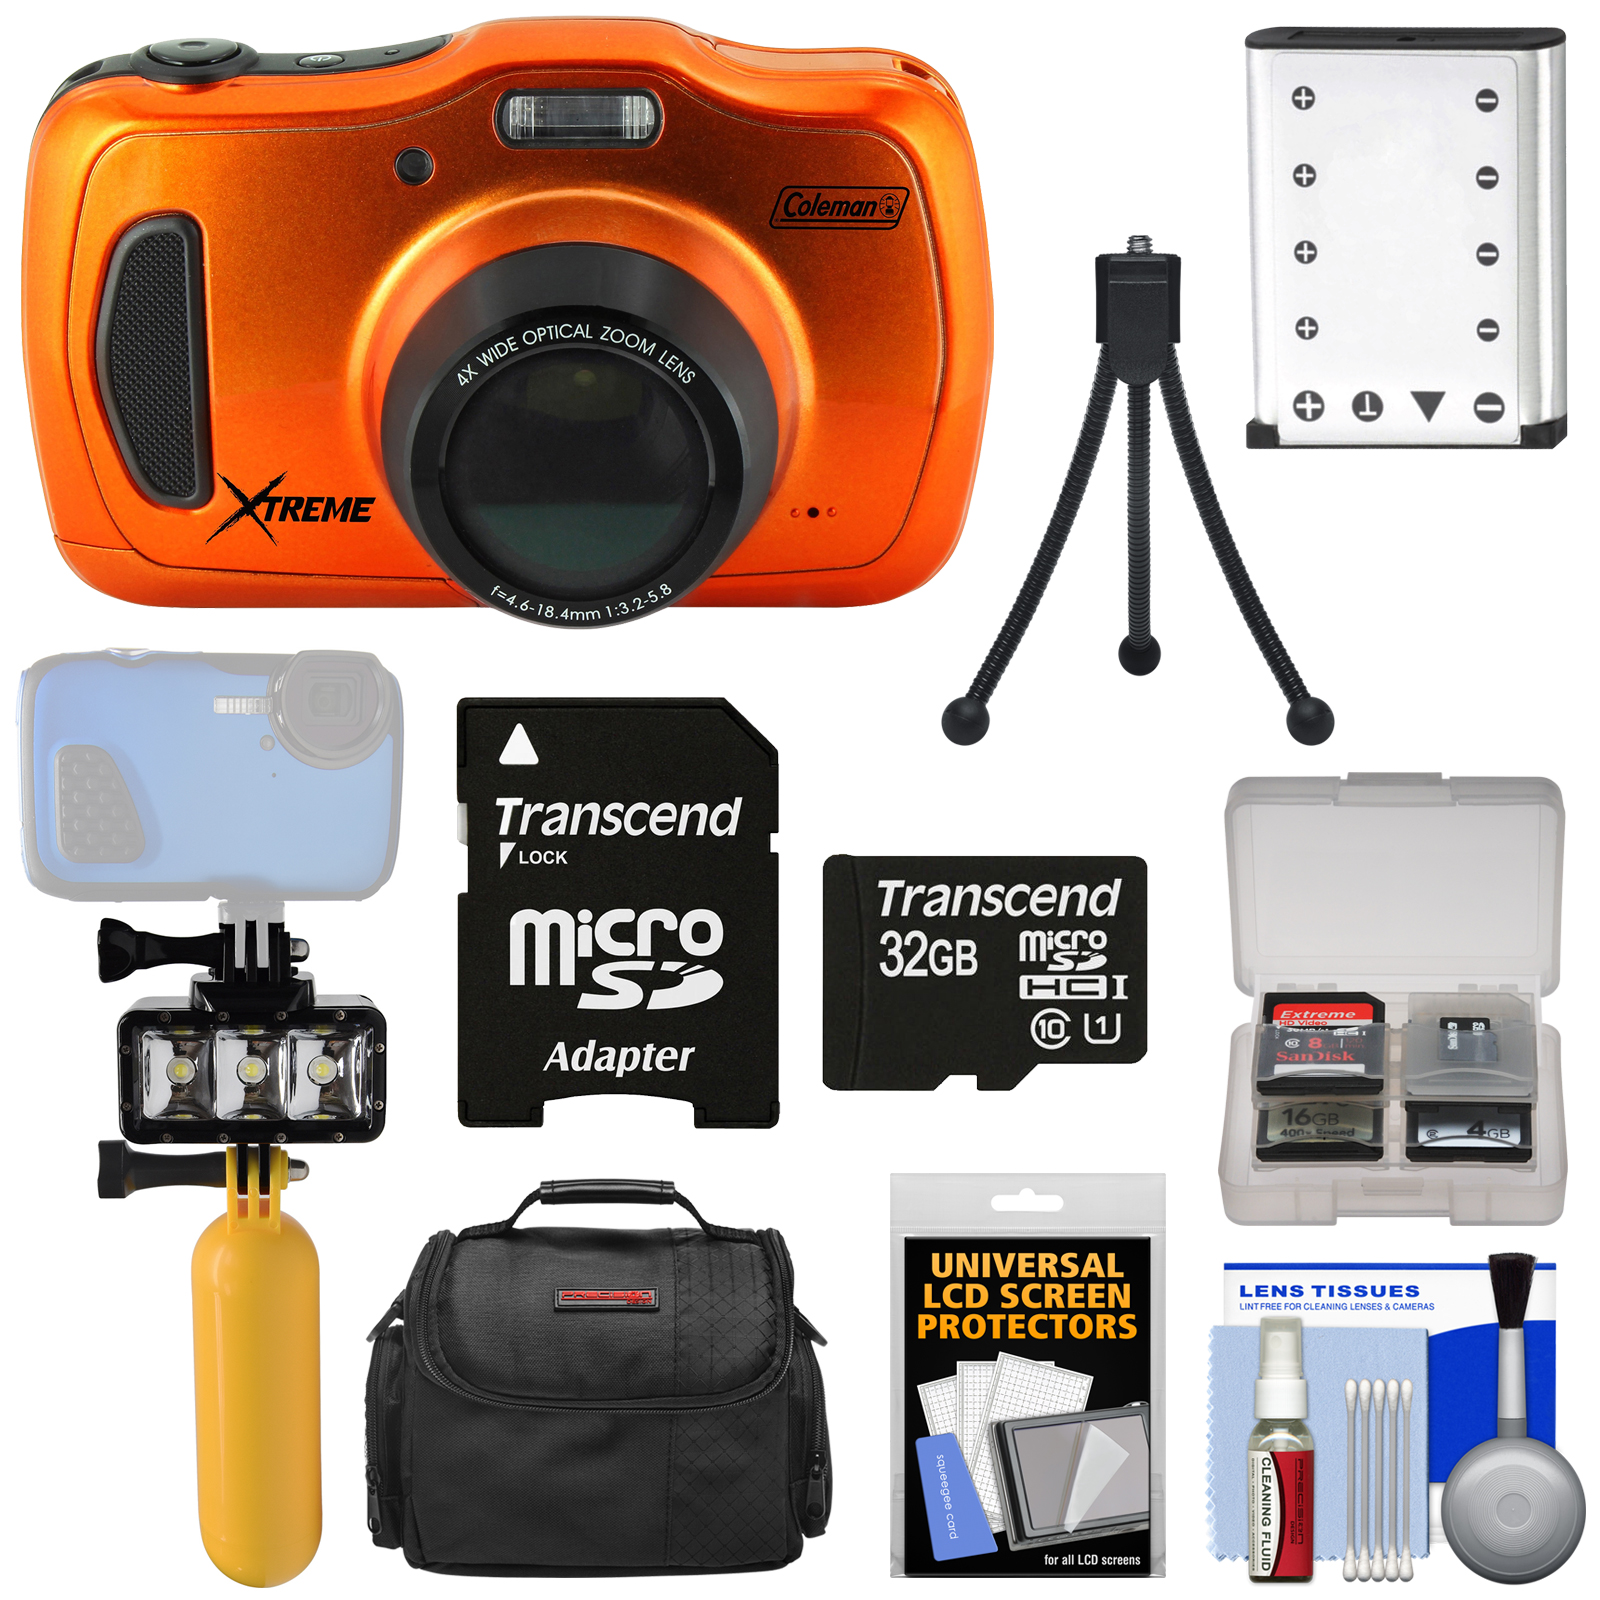 Coleman Xtreme4 C30WPZ Waterproof HD Digital Camera (Orange) with 32GB Card + Battery + Diving LED Video Light + Buoy... by Coleman